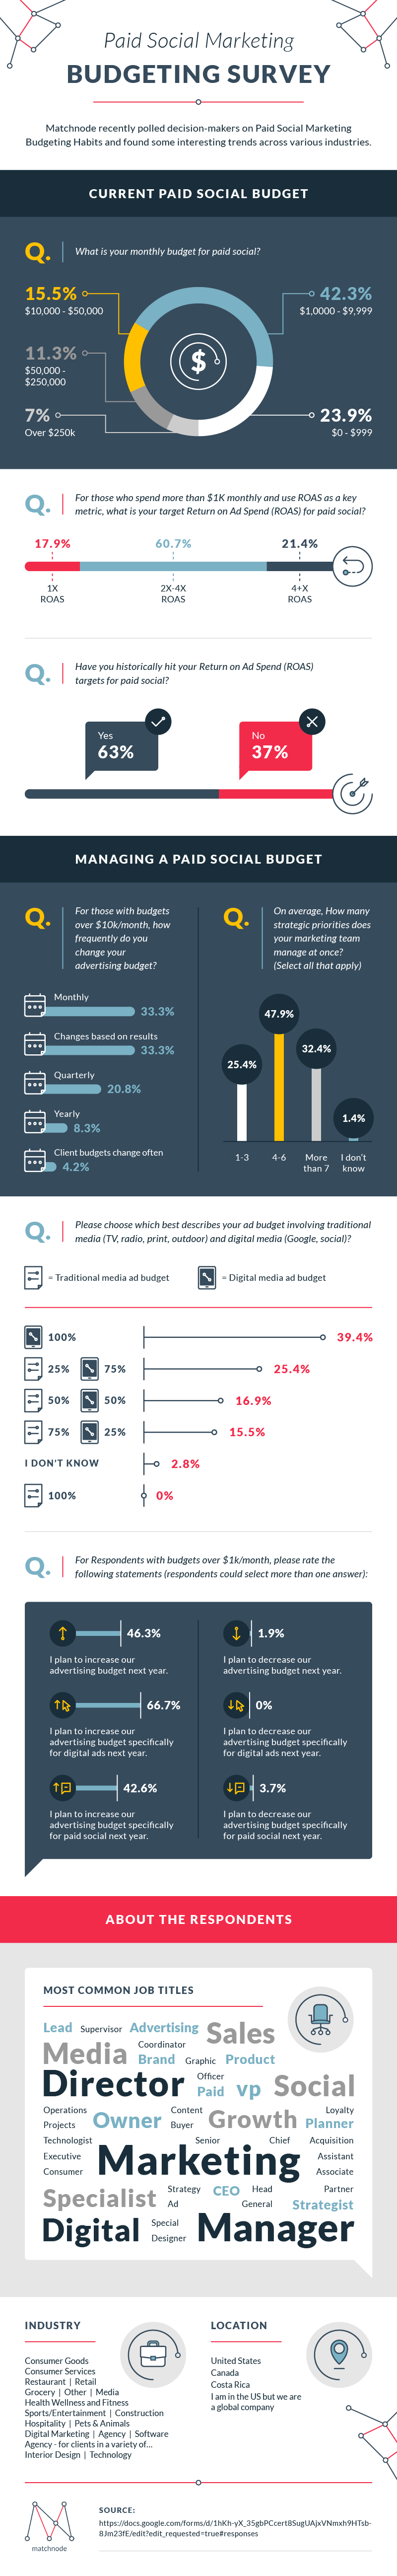 Paid Social Marketing Budgeting Survey #infographic